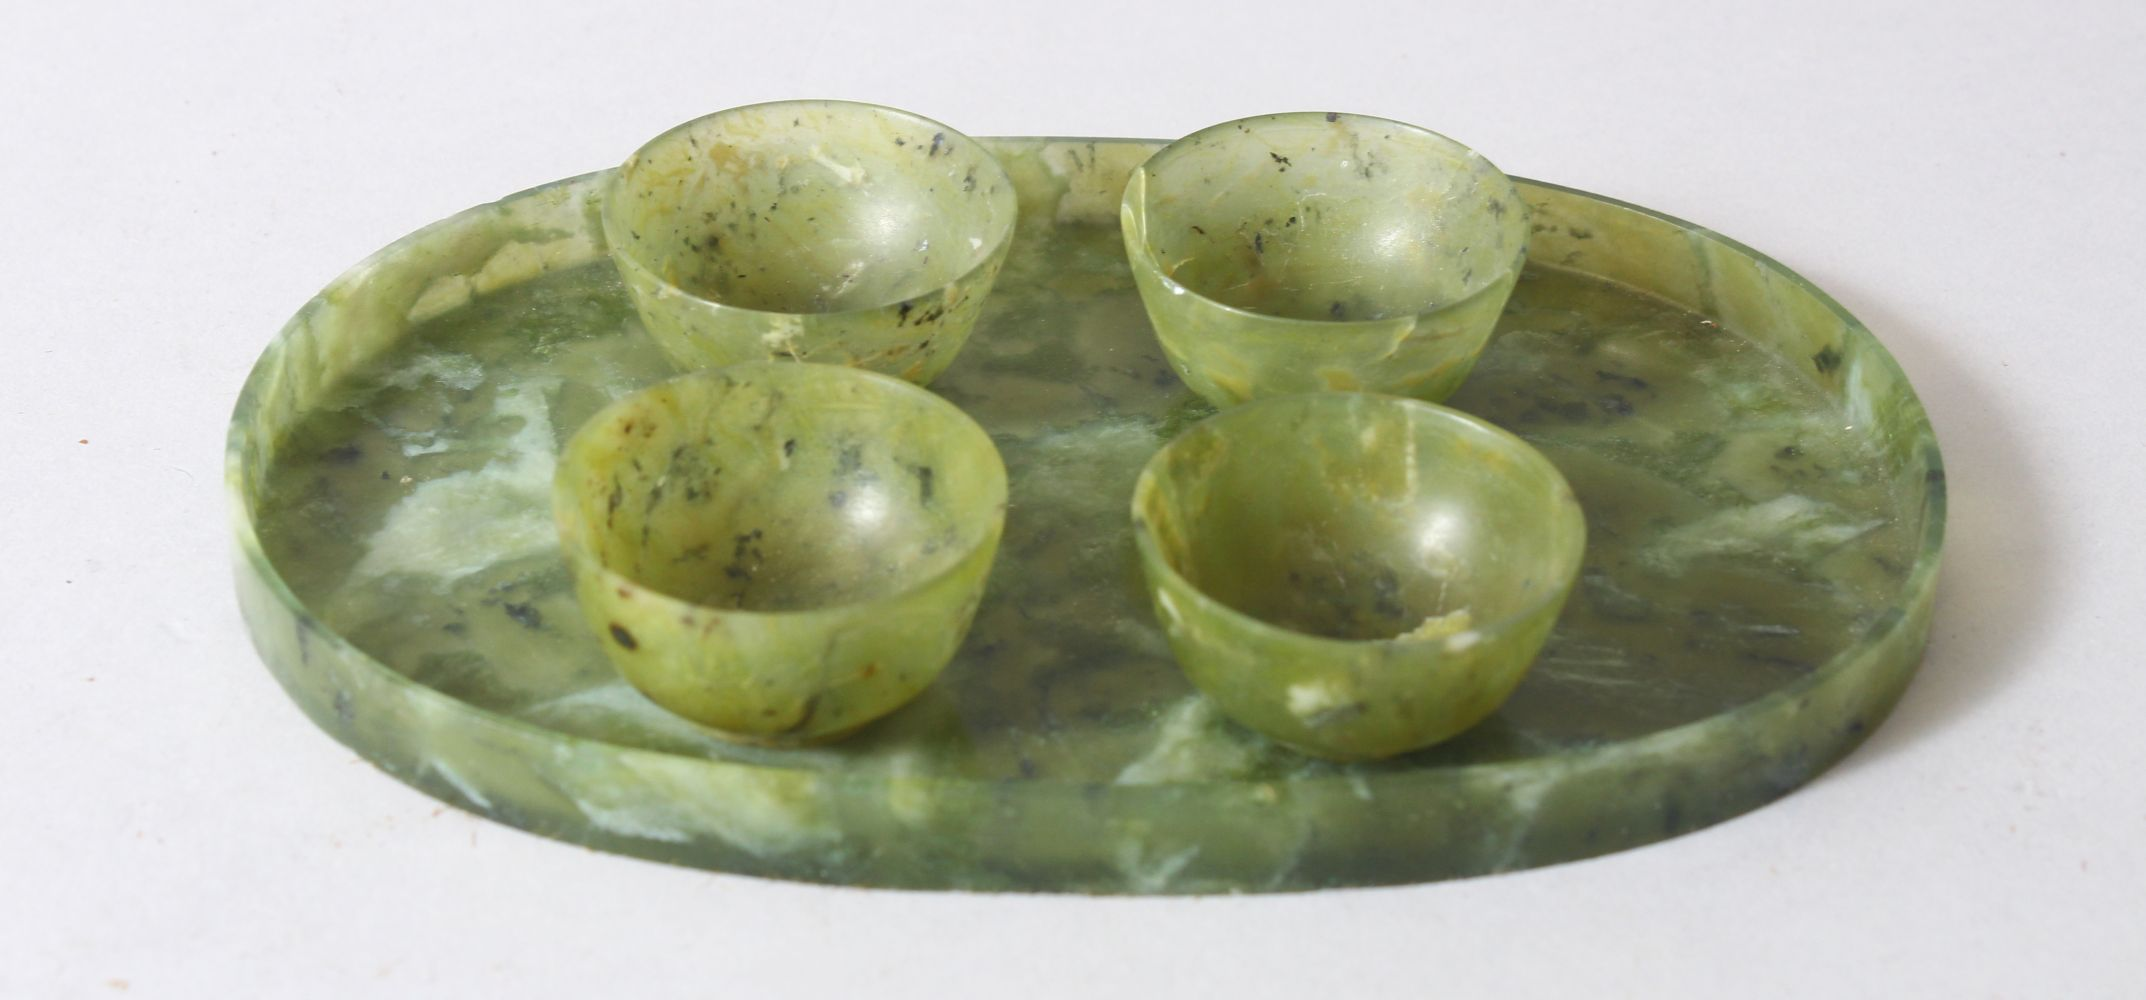 A CHINESE MOTTLED GREEN JADE OVAL TRAY AND FOUR TEA BOWLS, tray 16cm wide.